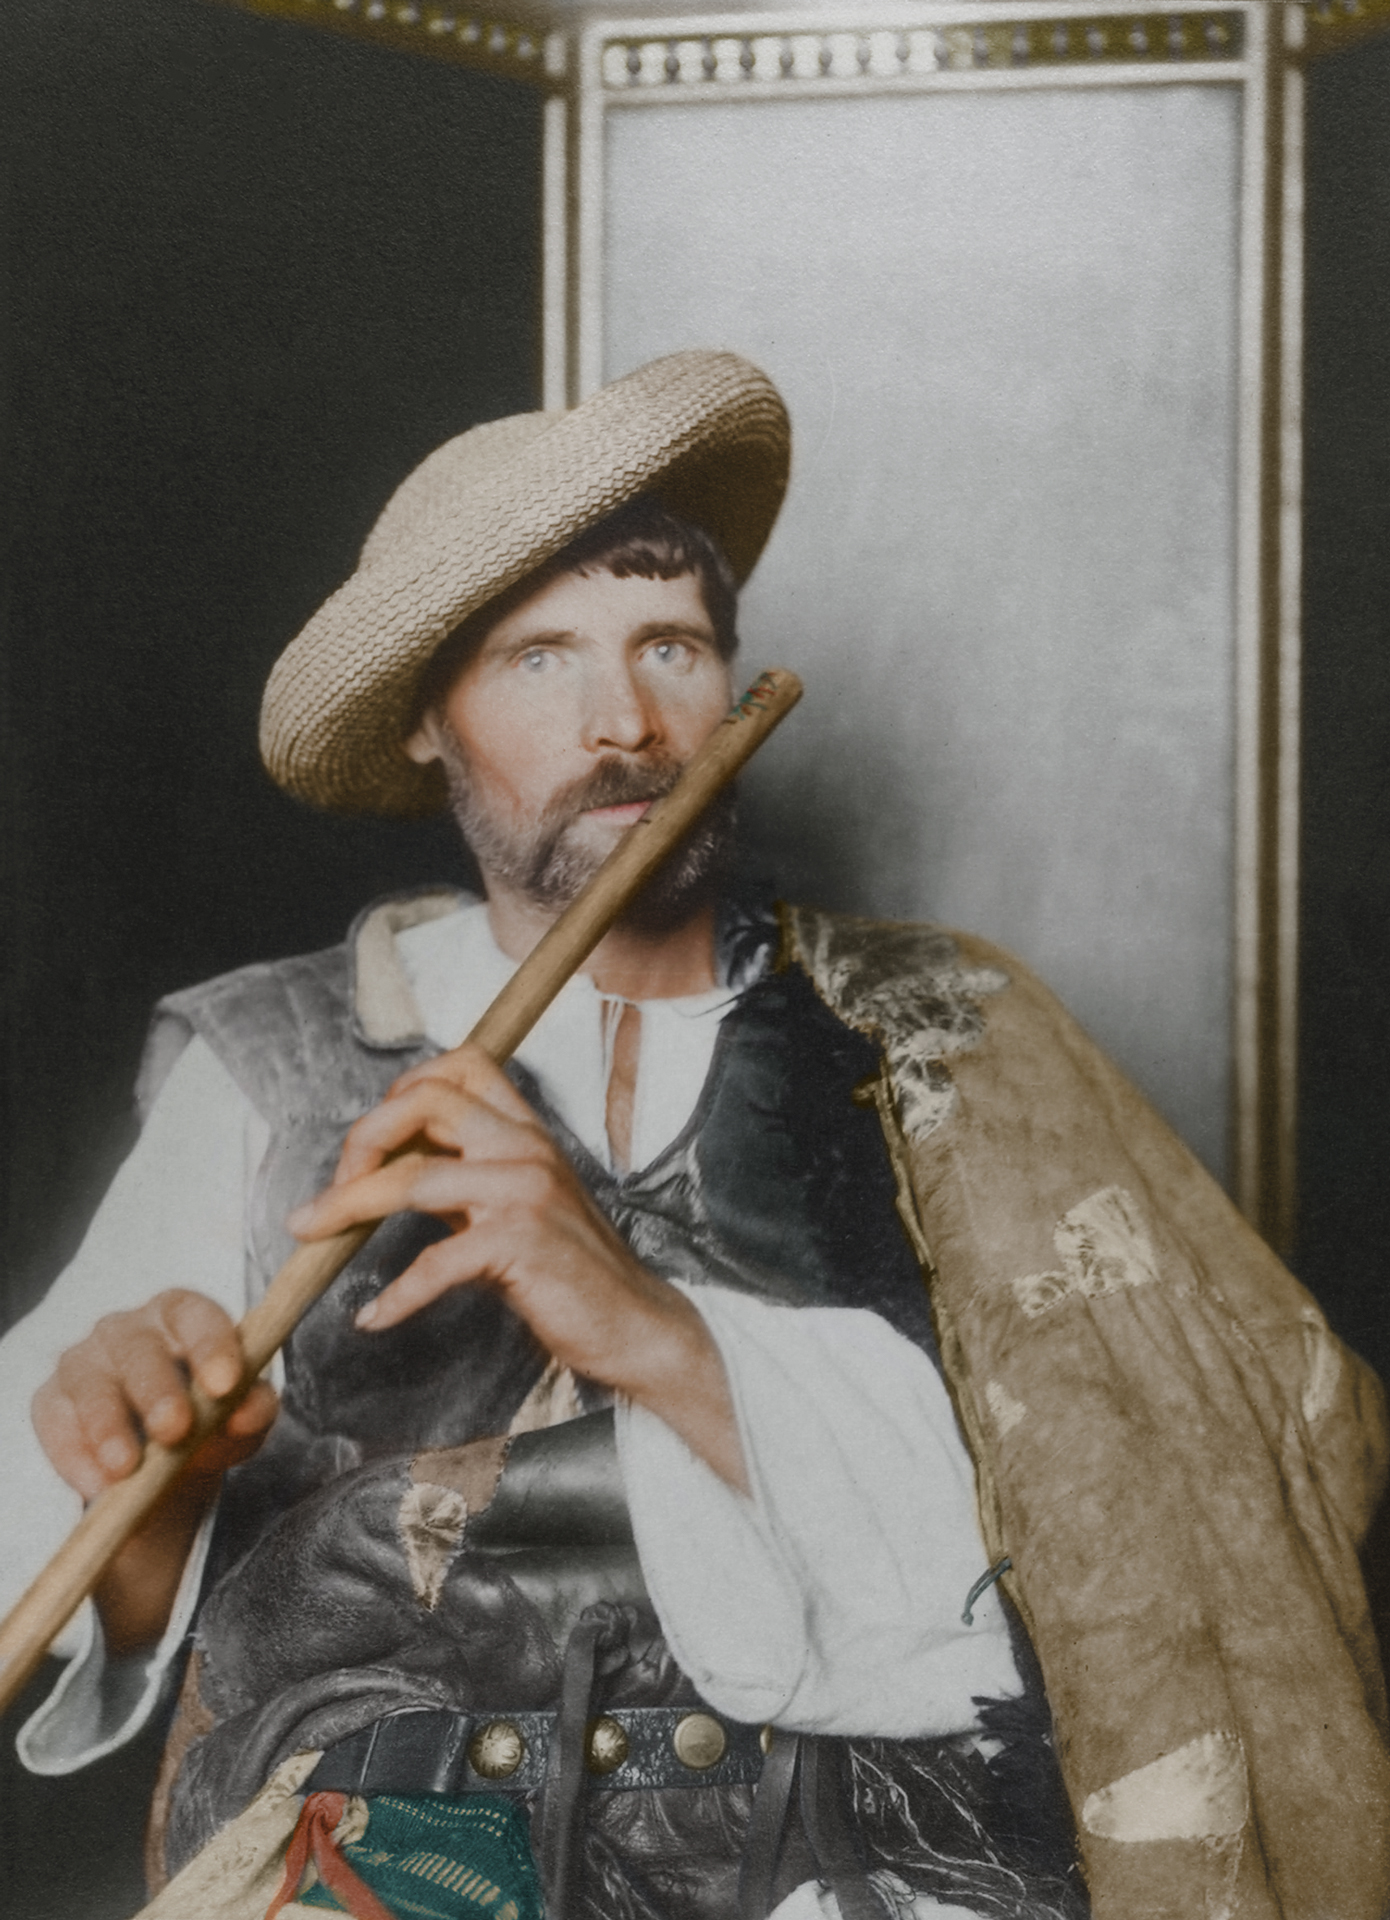 "c. 1910 ""Romanian piper."" This particular cojoc, an embroidered sleeved sheepskin coat is much plainer than the shepherd's version, making it a more practical, work oriented coat, suggesting that the subject is of the working class given the lack of decoration and the straw hat. The waistcoat, known as a pieptar is worn by both men and women, and smaller waistcoats were made from lambskin."